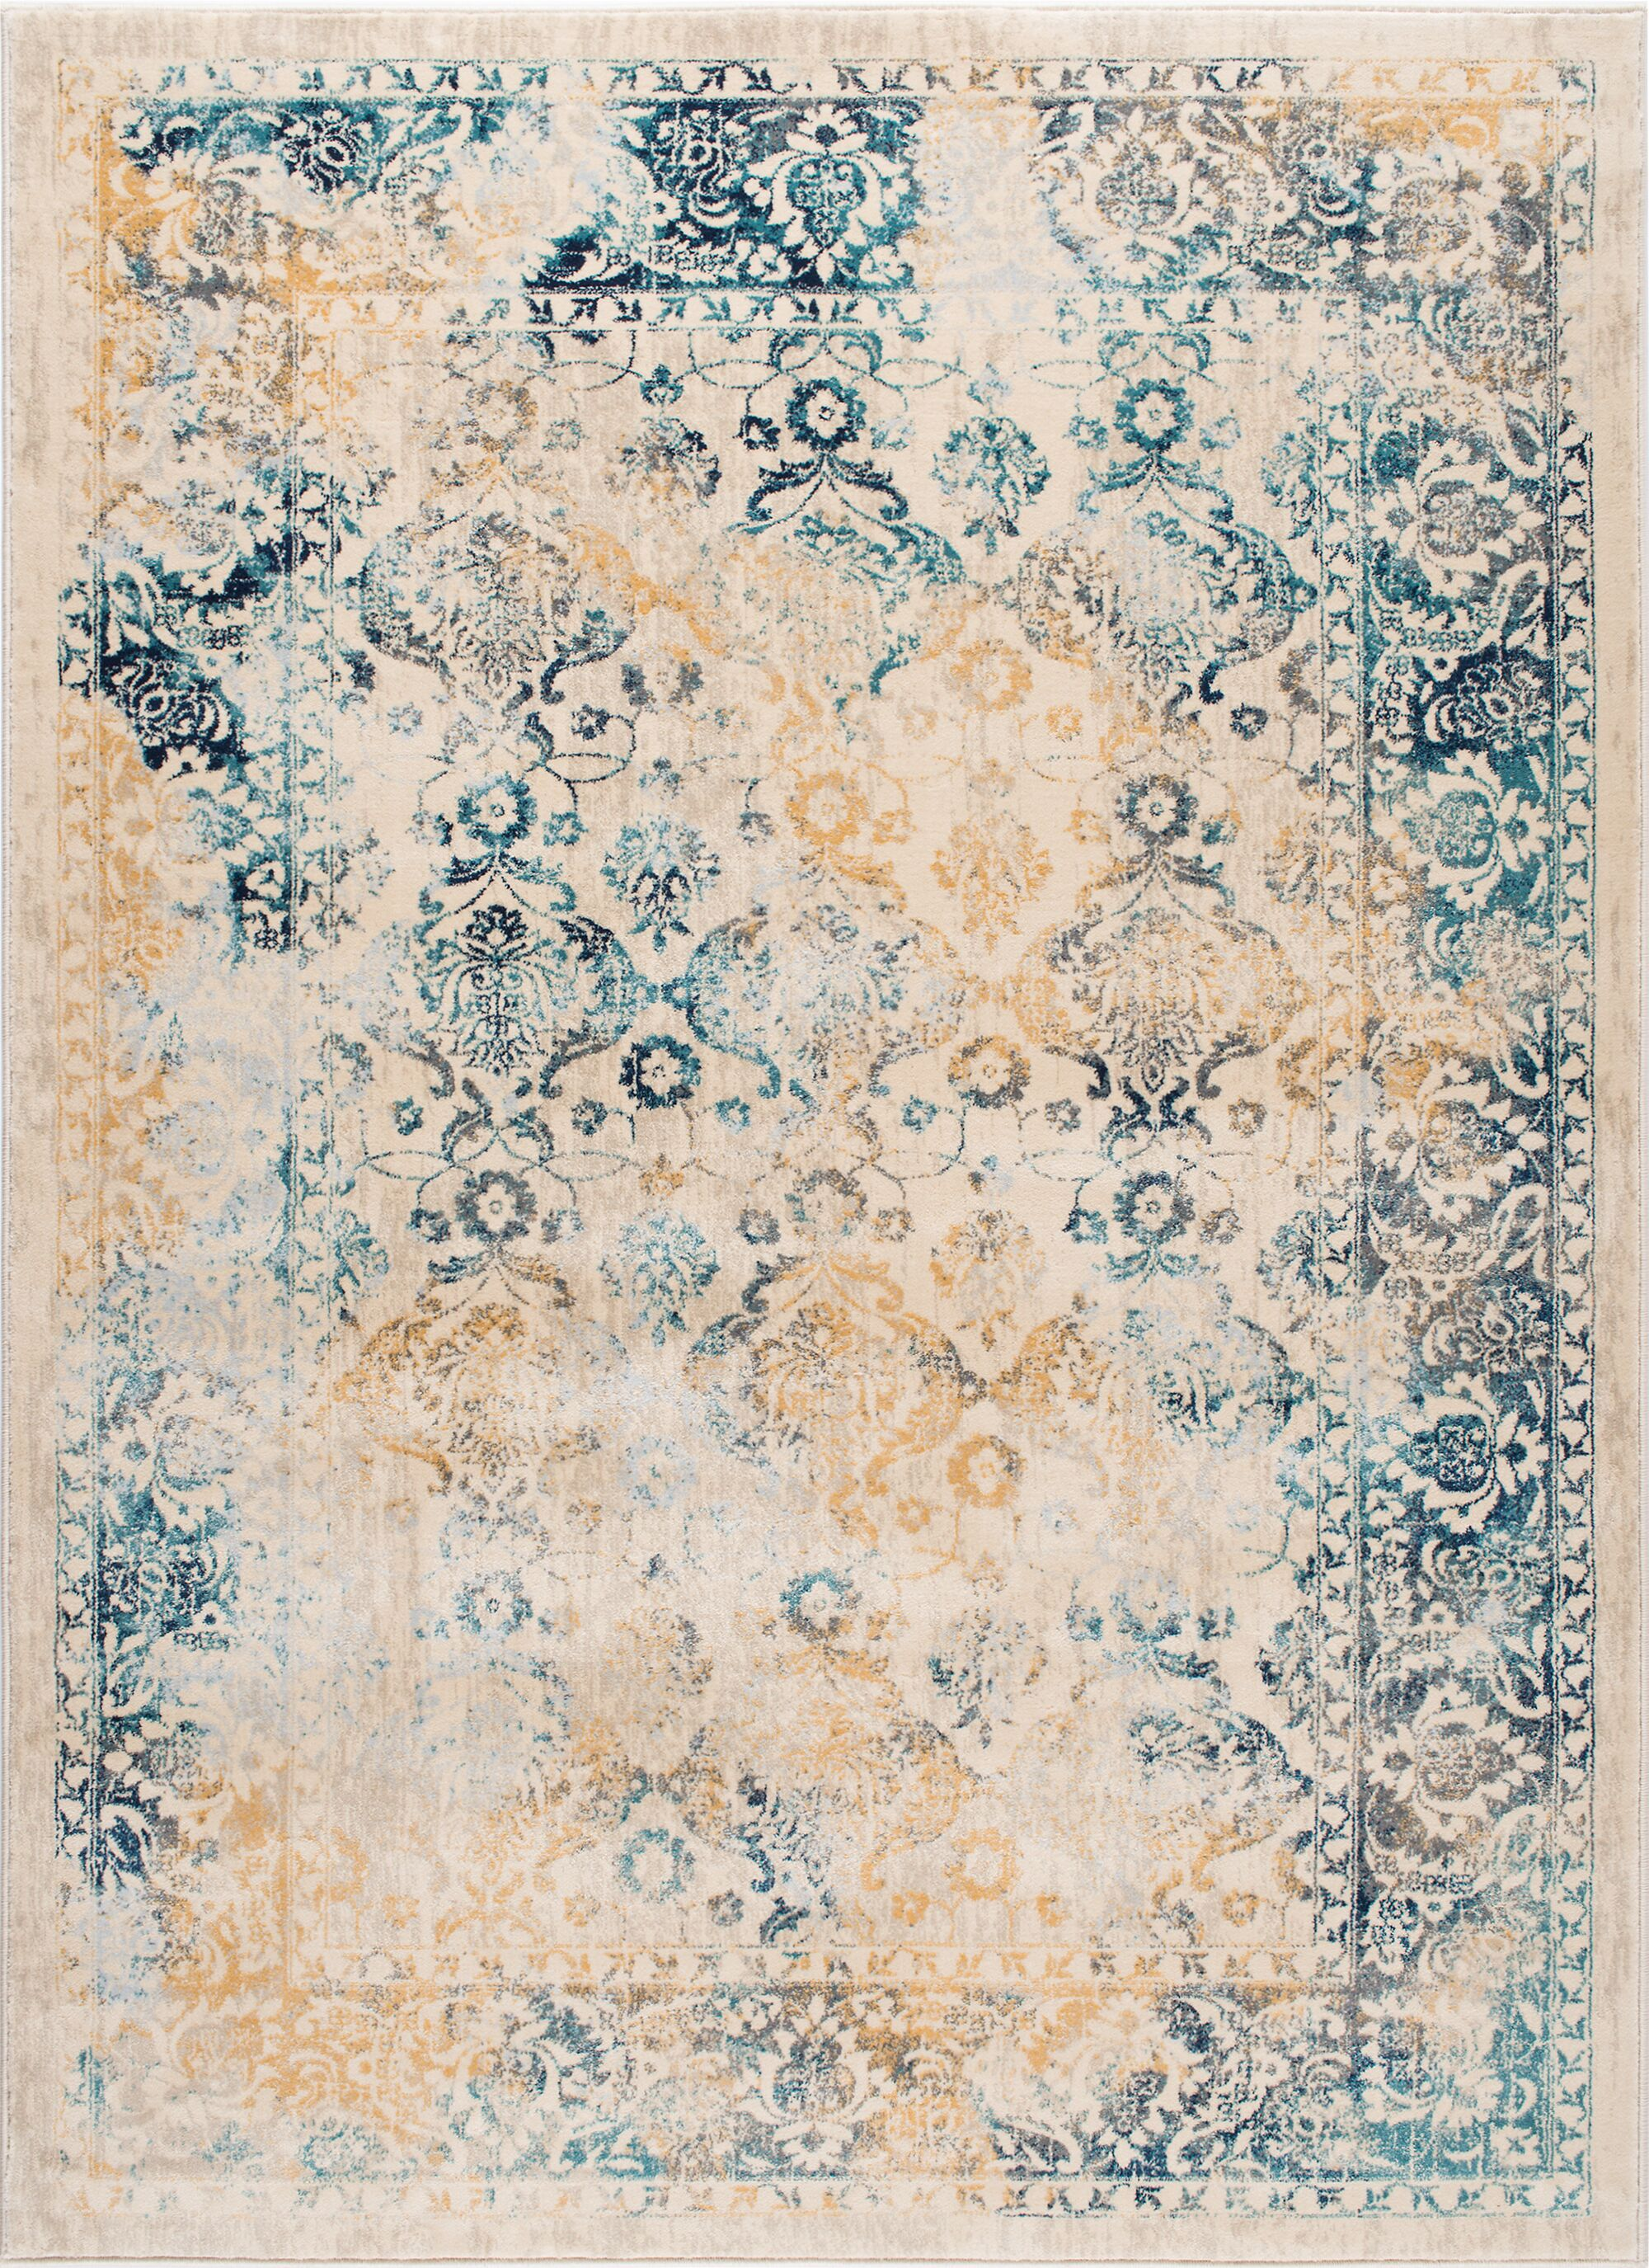 Aquila Blue/Yellow & Gold Area Rug Rug Size: 7'10'' x 10'3''